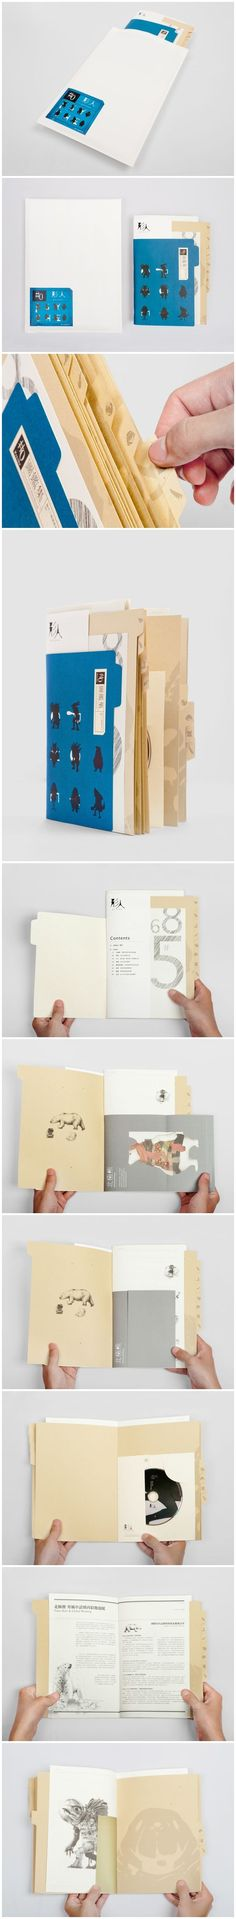 许琪图鉴 / oriental editorial design #experimental #books: